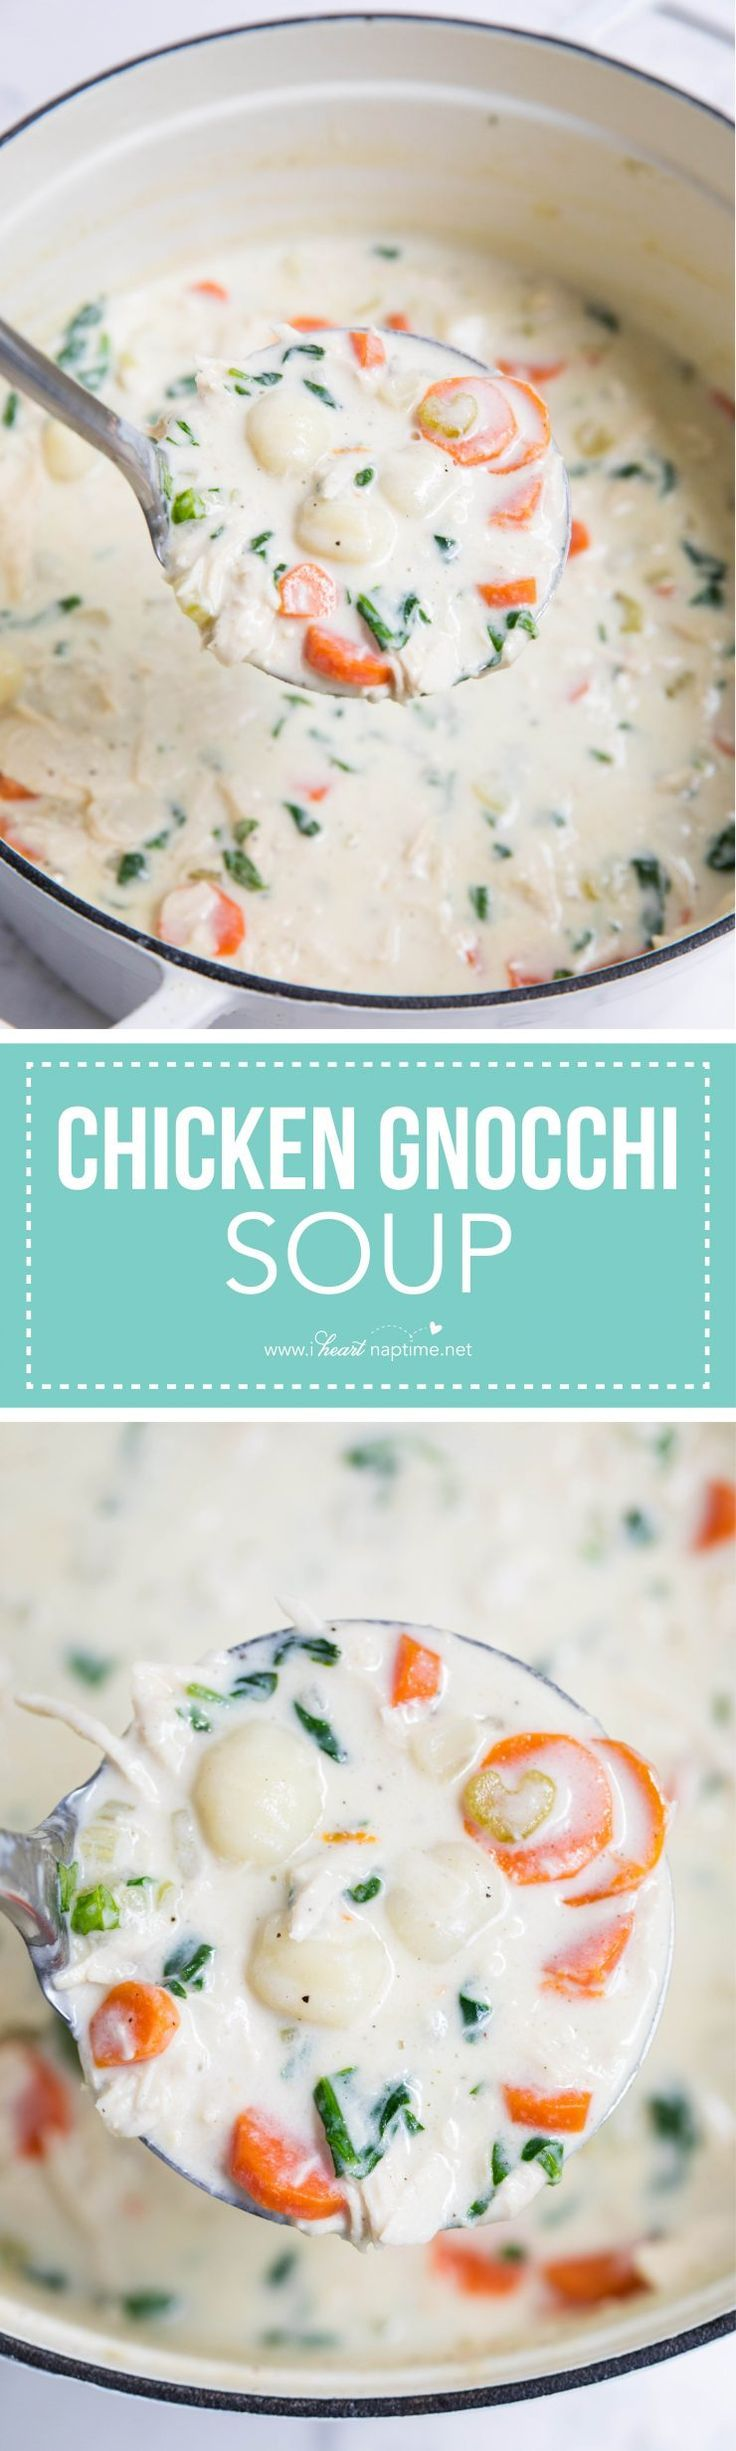 9 best Soup & Gumbo Recipes images on Pinterest   Paul prudhomme ...